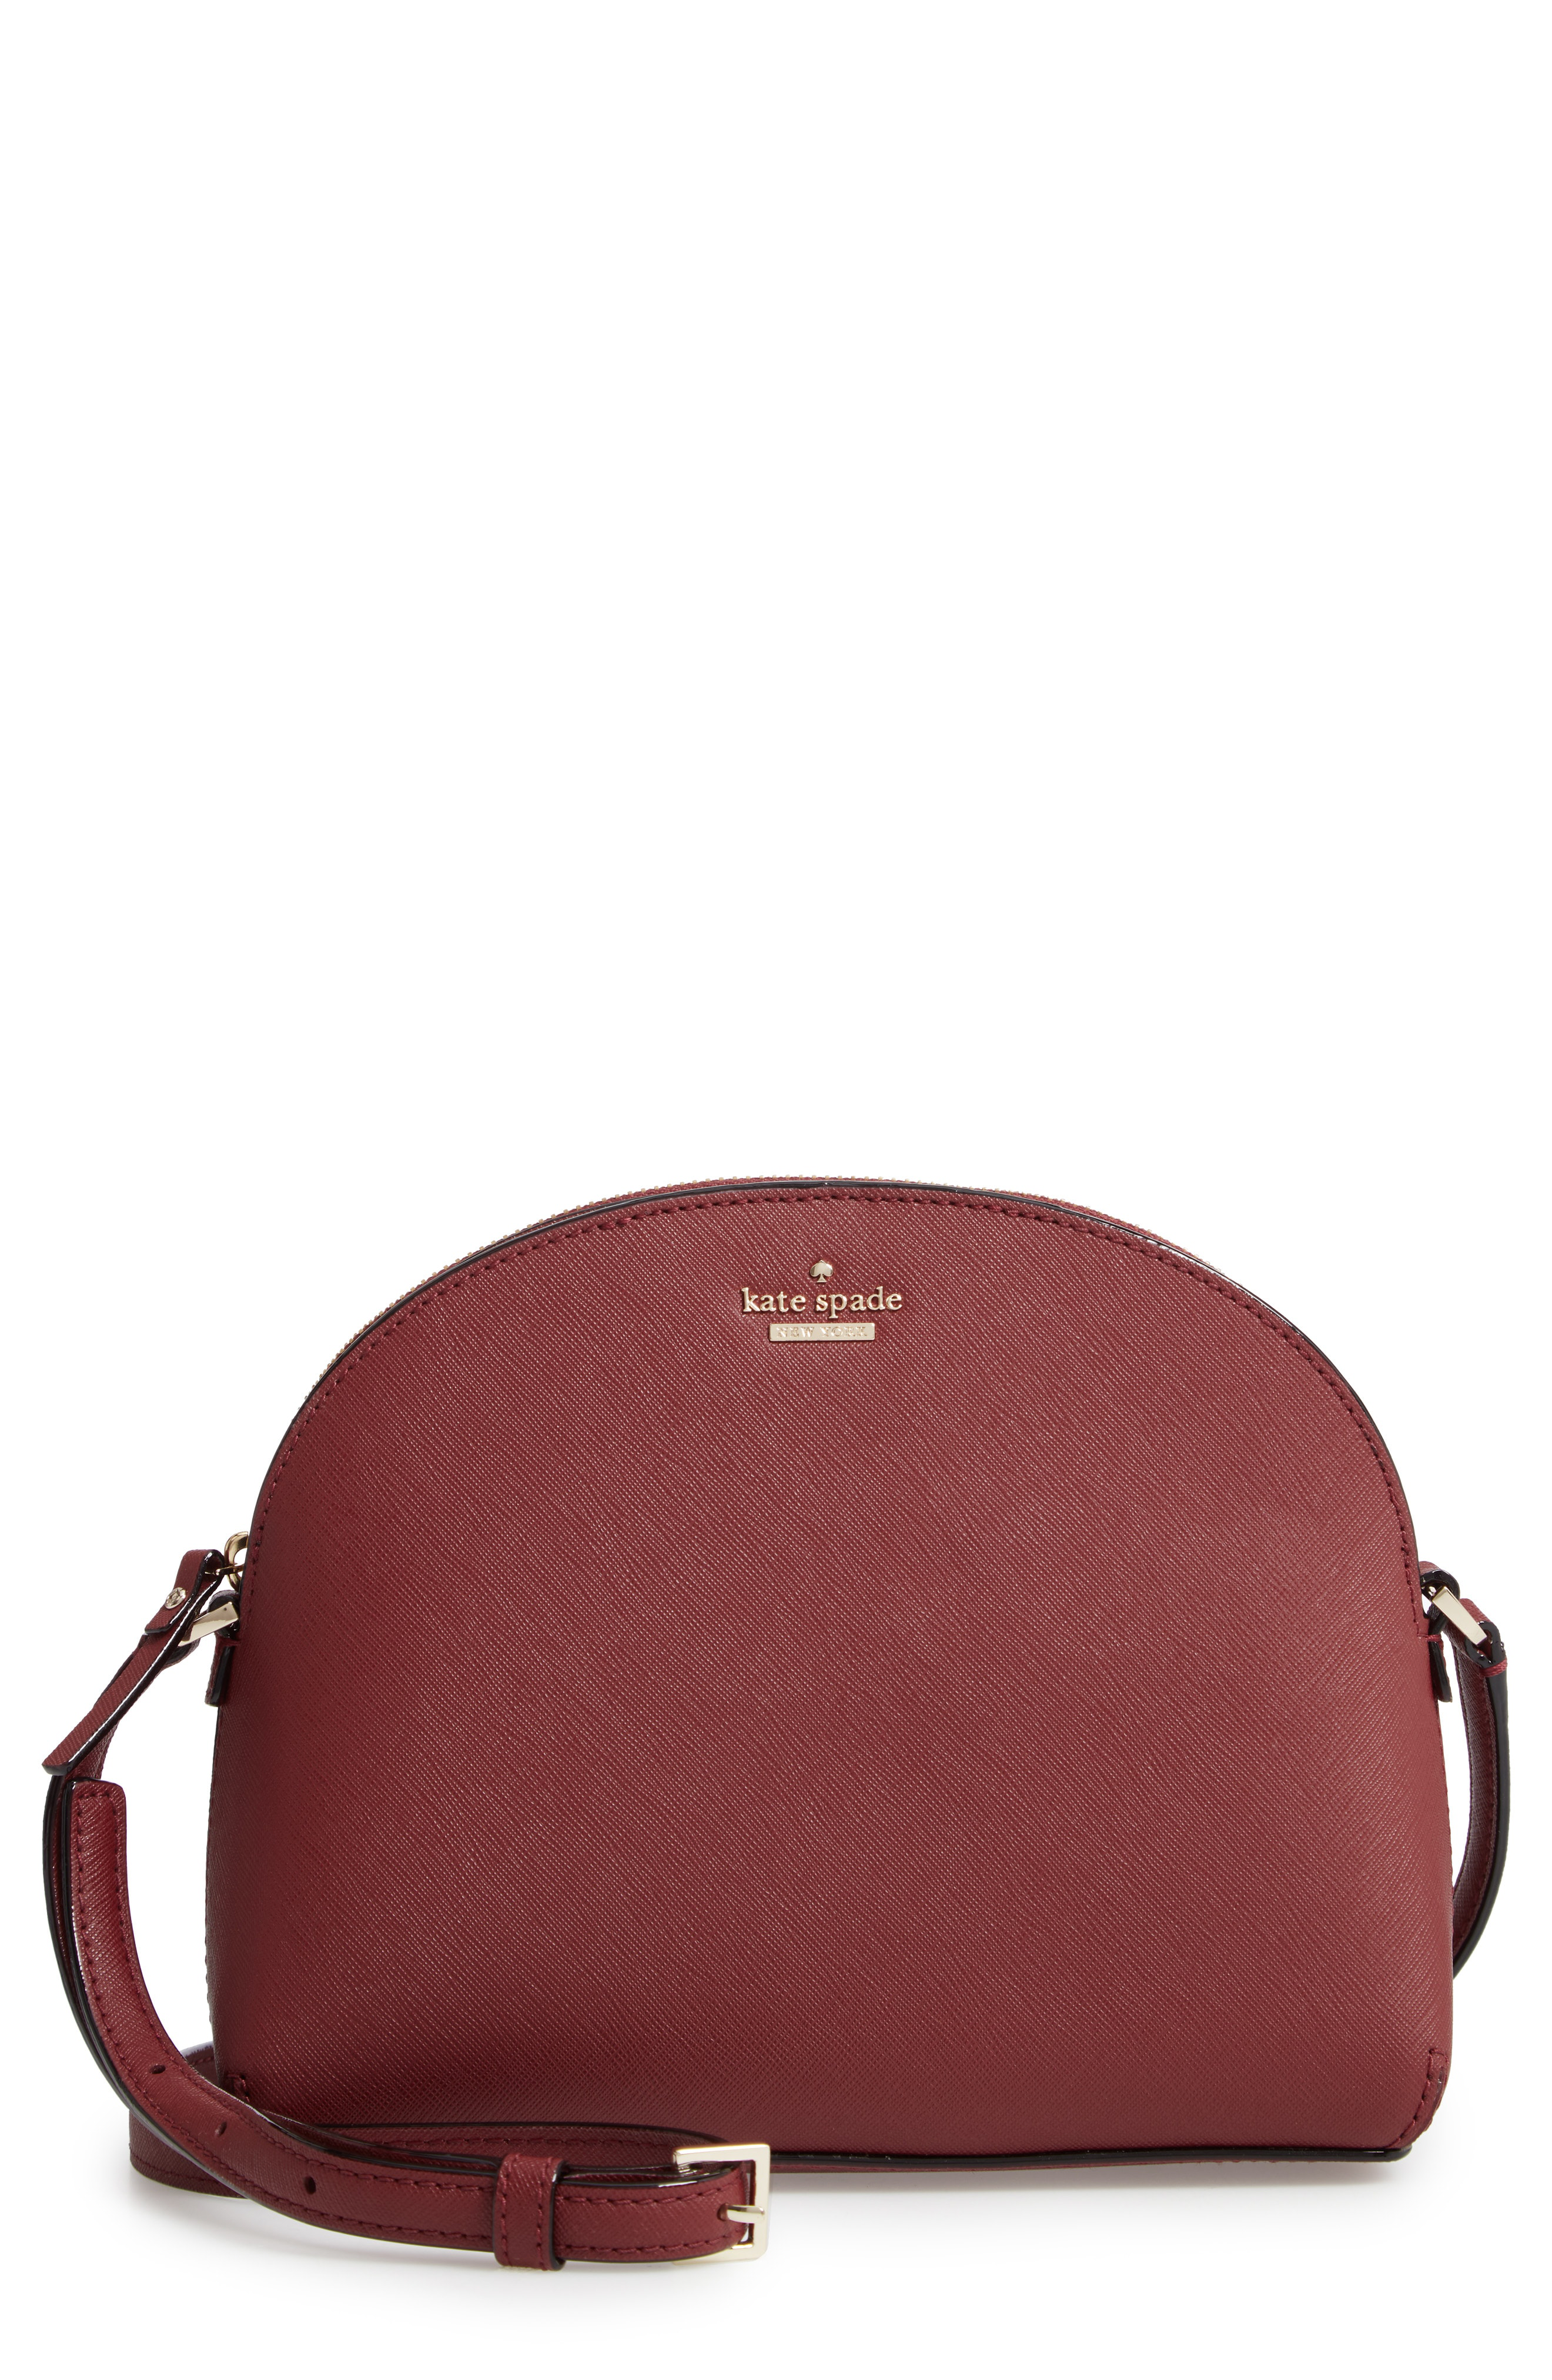 5d54149864f57d Kate Spade Cameron Street Large Hilli Leather Crossbody Bag - Red In Sienna